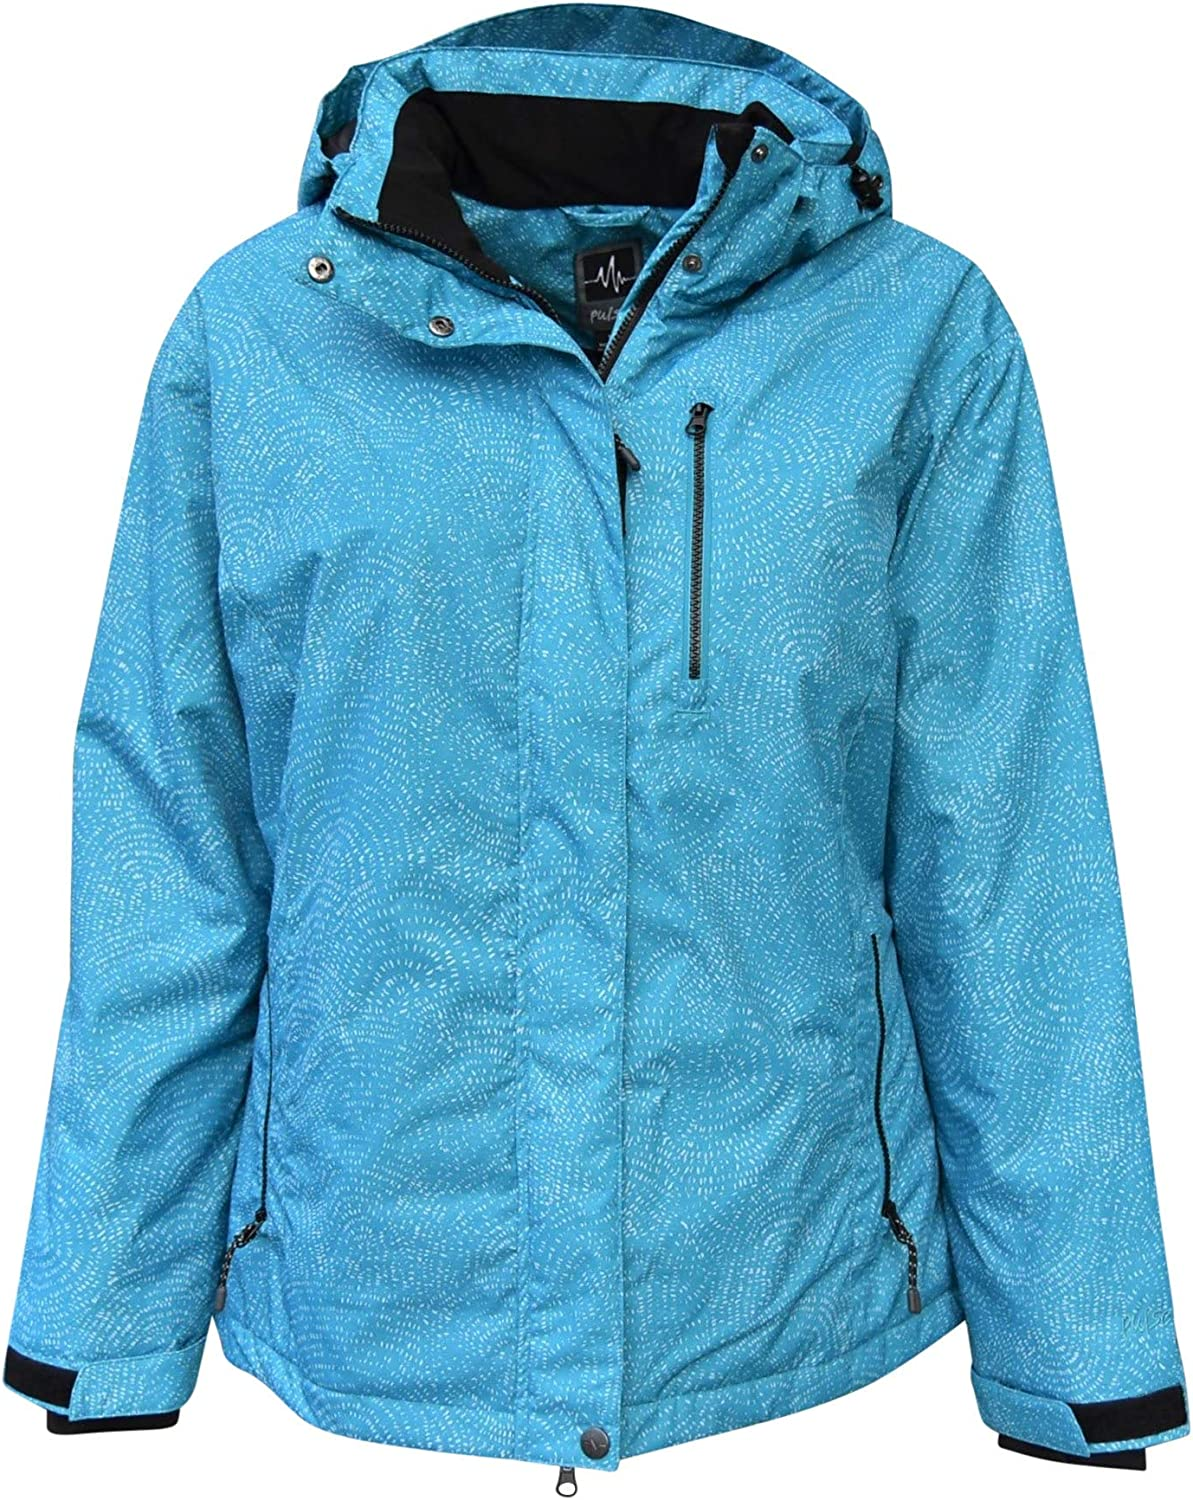 Pulse Women's Plus Size Extended Insulated Bevel Snow Ski Jacket: Clothing